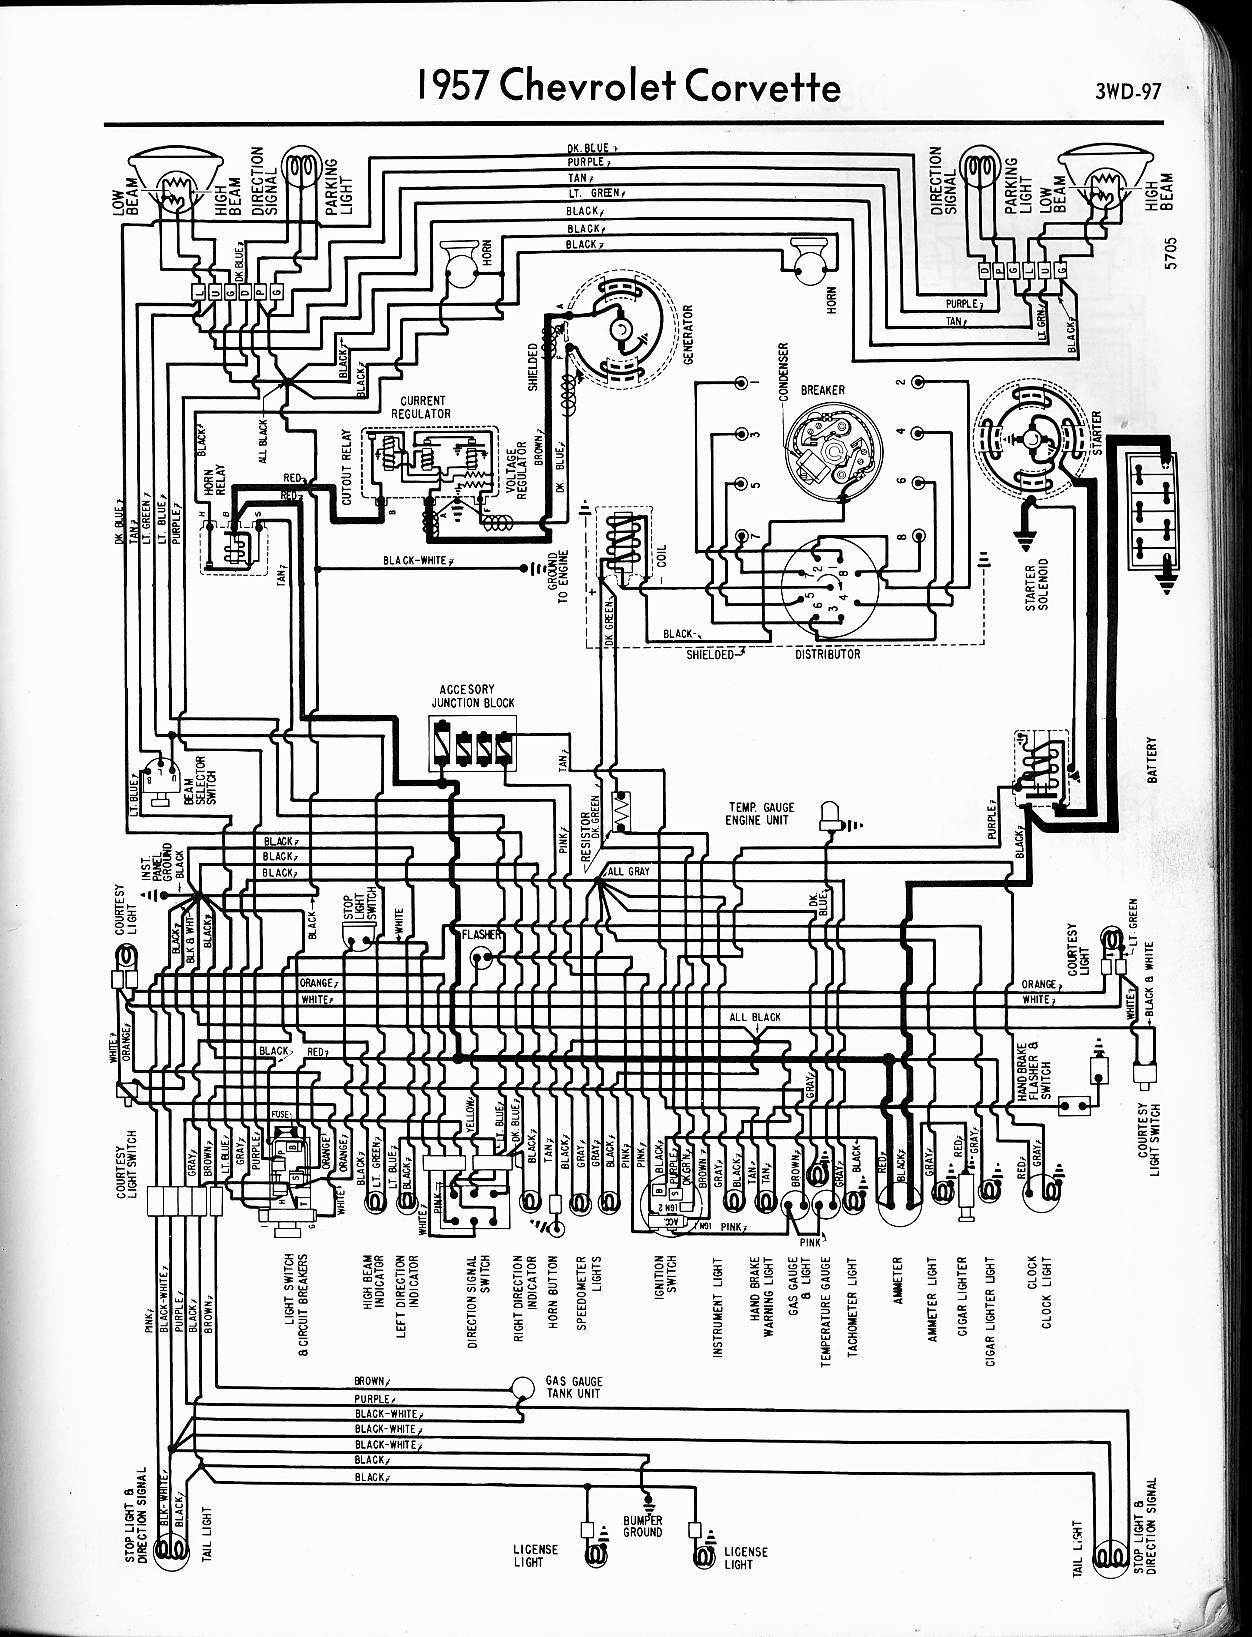 MWireChev57_3WD 097 57 65 chevy wiring diagrams 1957 chevy truck wiring diagram at fashall.co